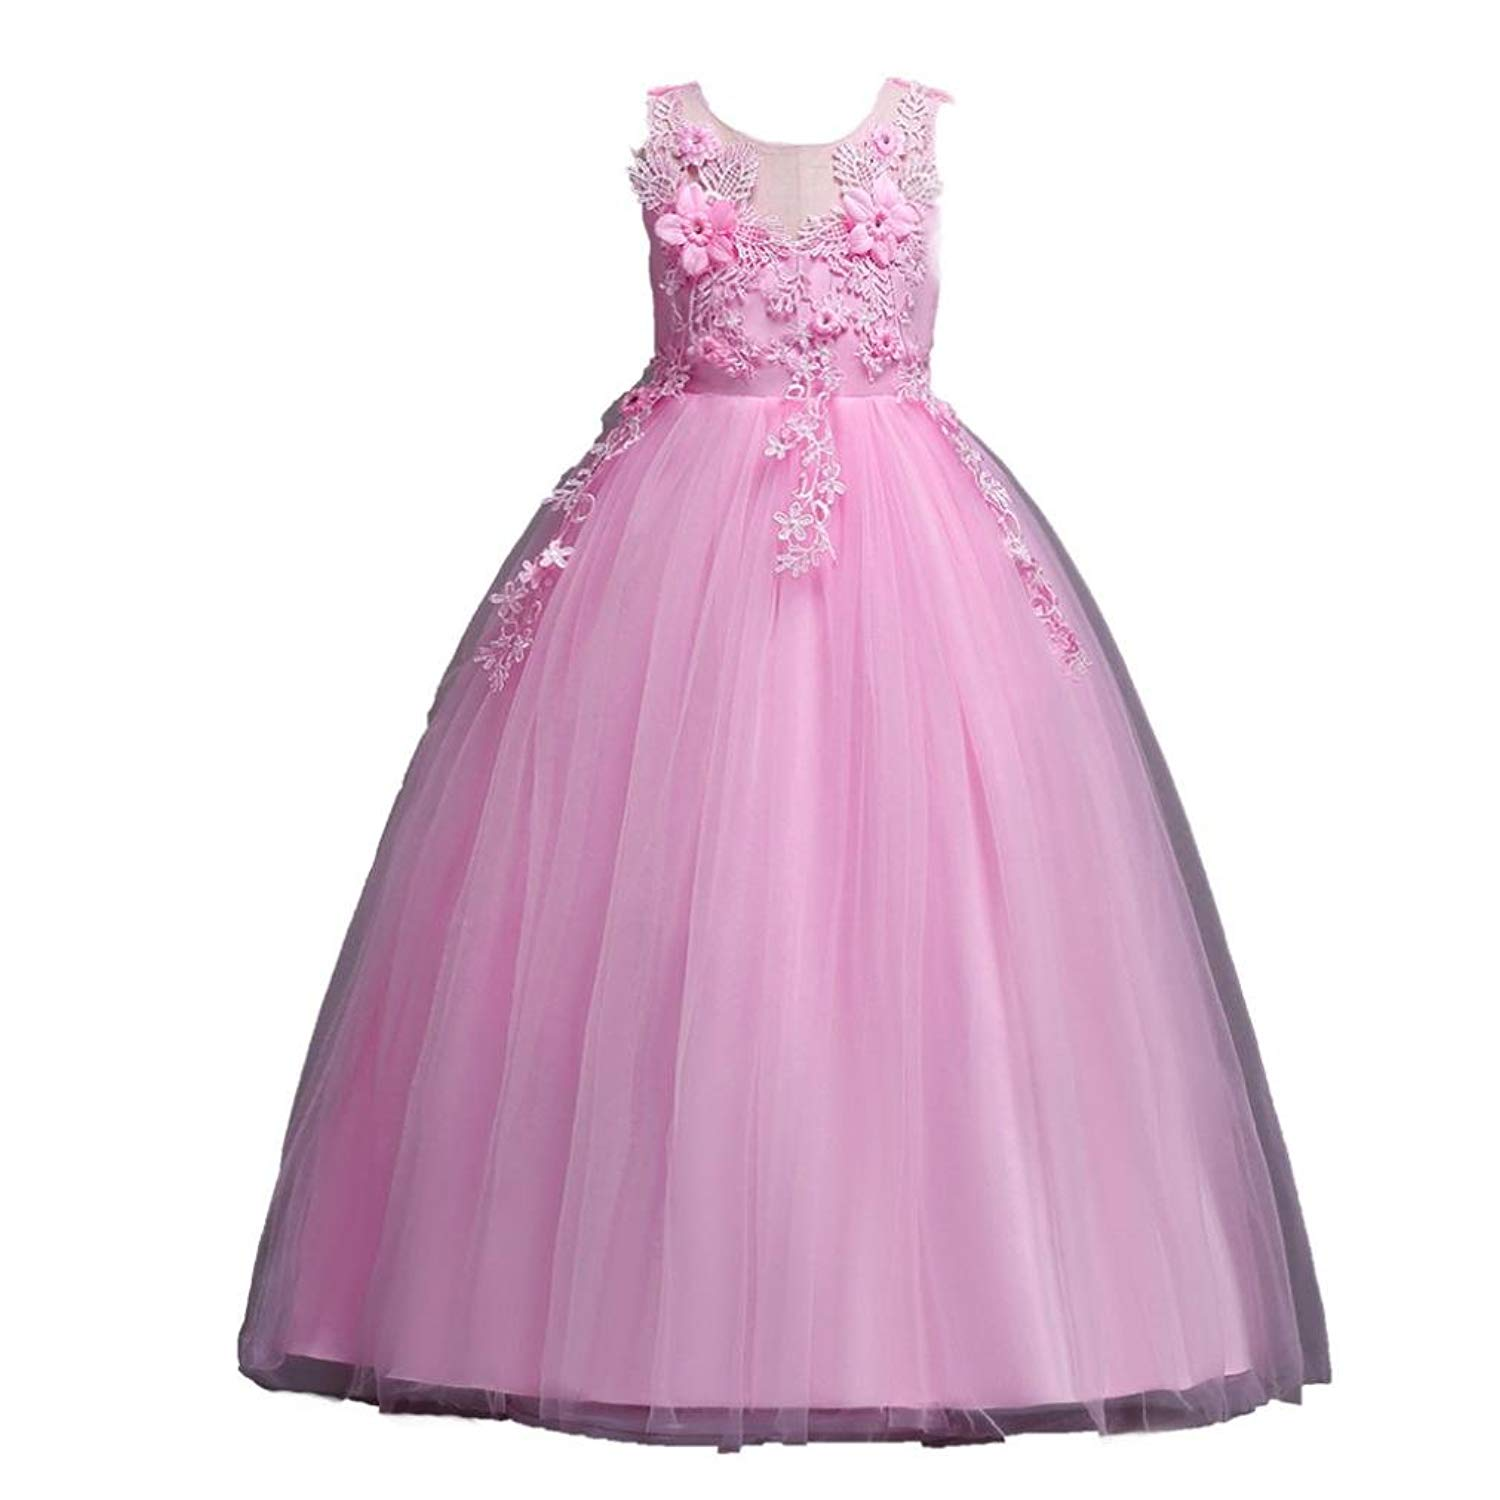 807d816a23f5 Cheap Bridesmaid Tutu